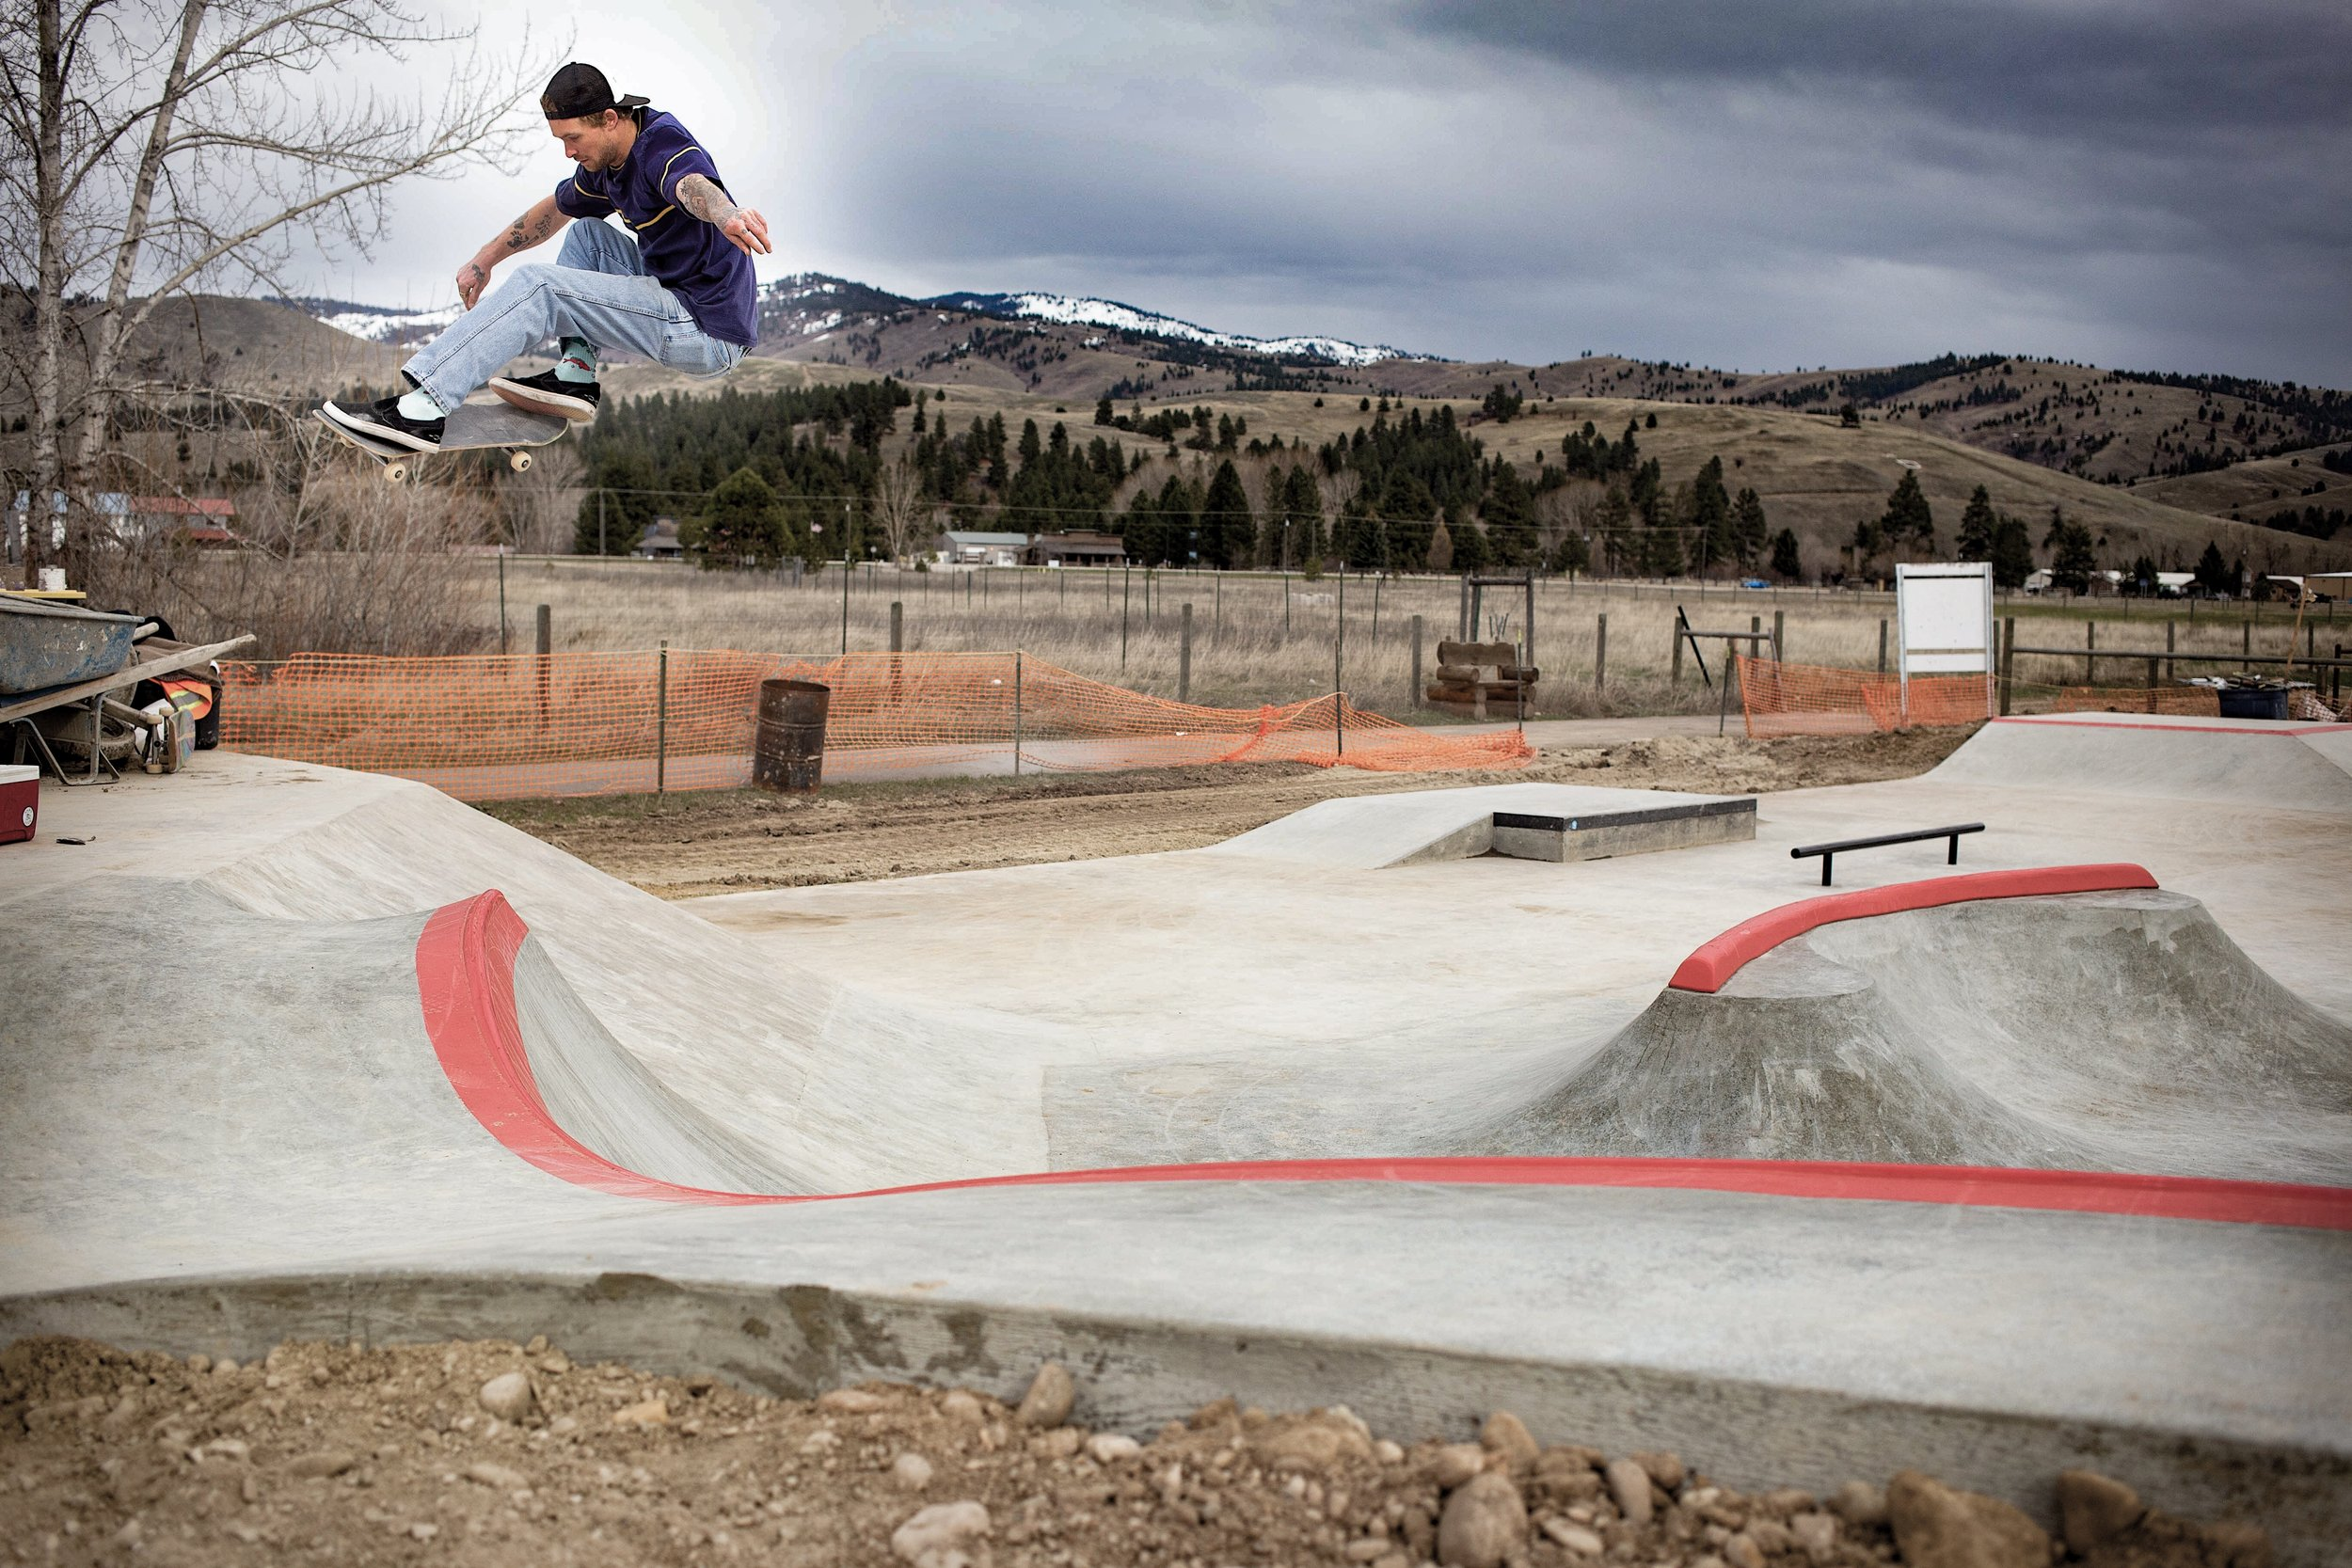 New crew member @judastweest tests out the new section we built this spring in Darby, Montana.